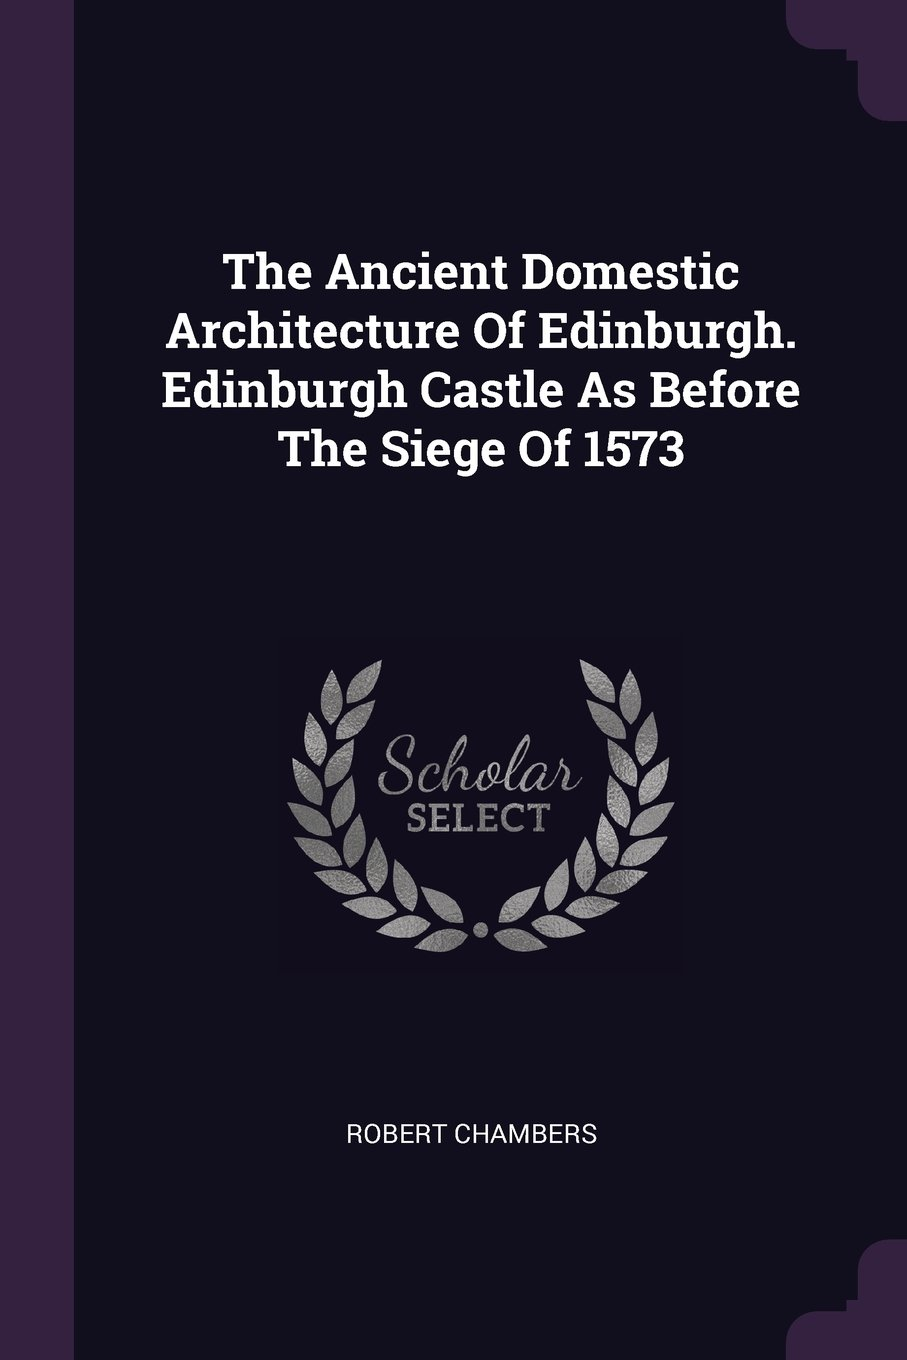 Download The Ancient Domestic Architecture Of Edinburgh. Edinburgh Castle As Before The Siege Of 1573 ebook